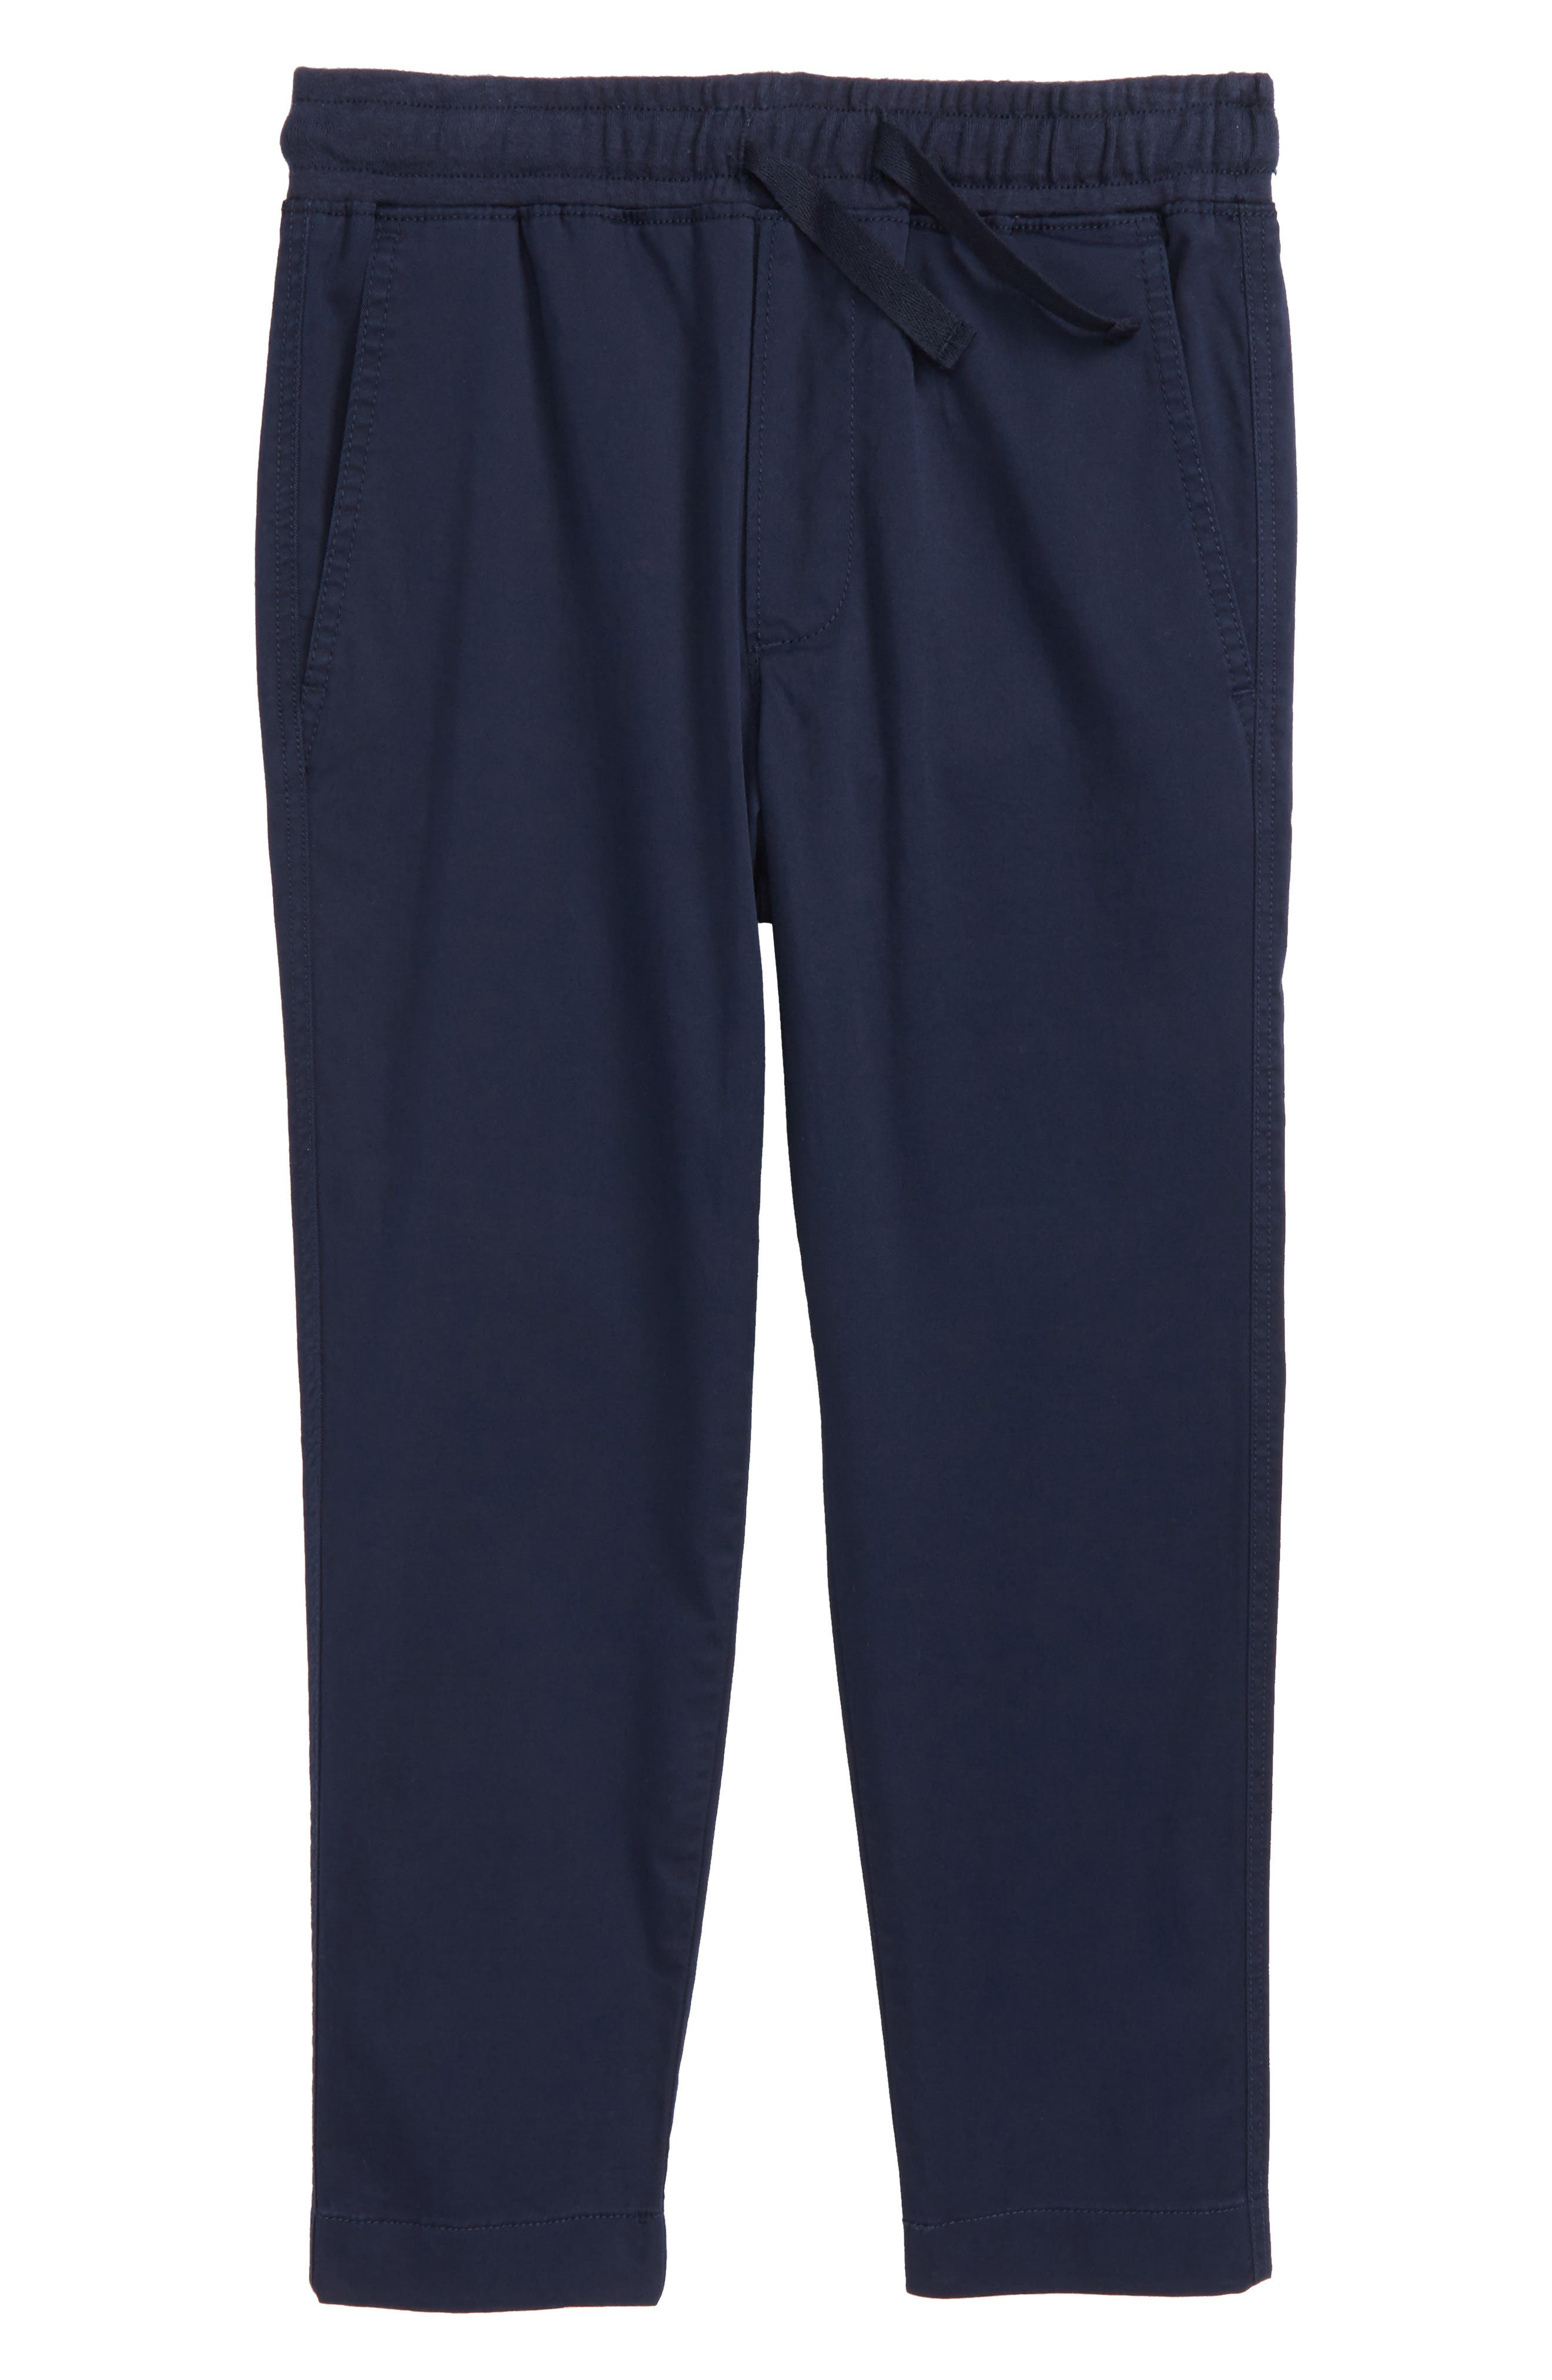 Boys Crewcuts By Jcrew Pull On Pants Size 7  Blue